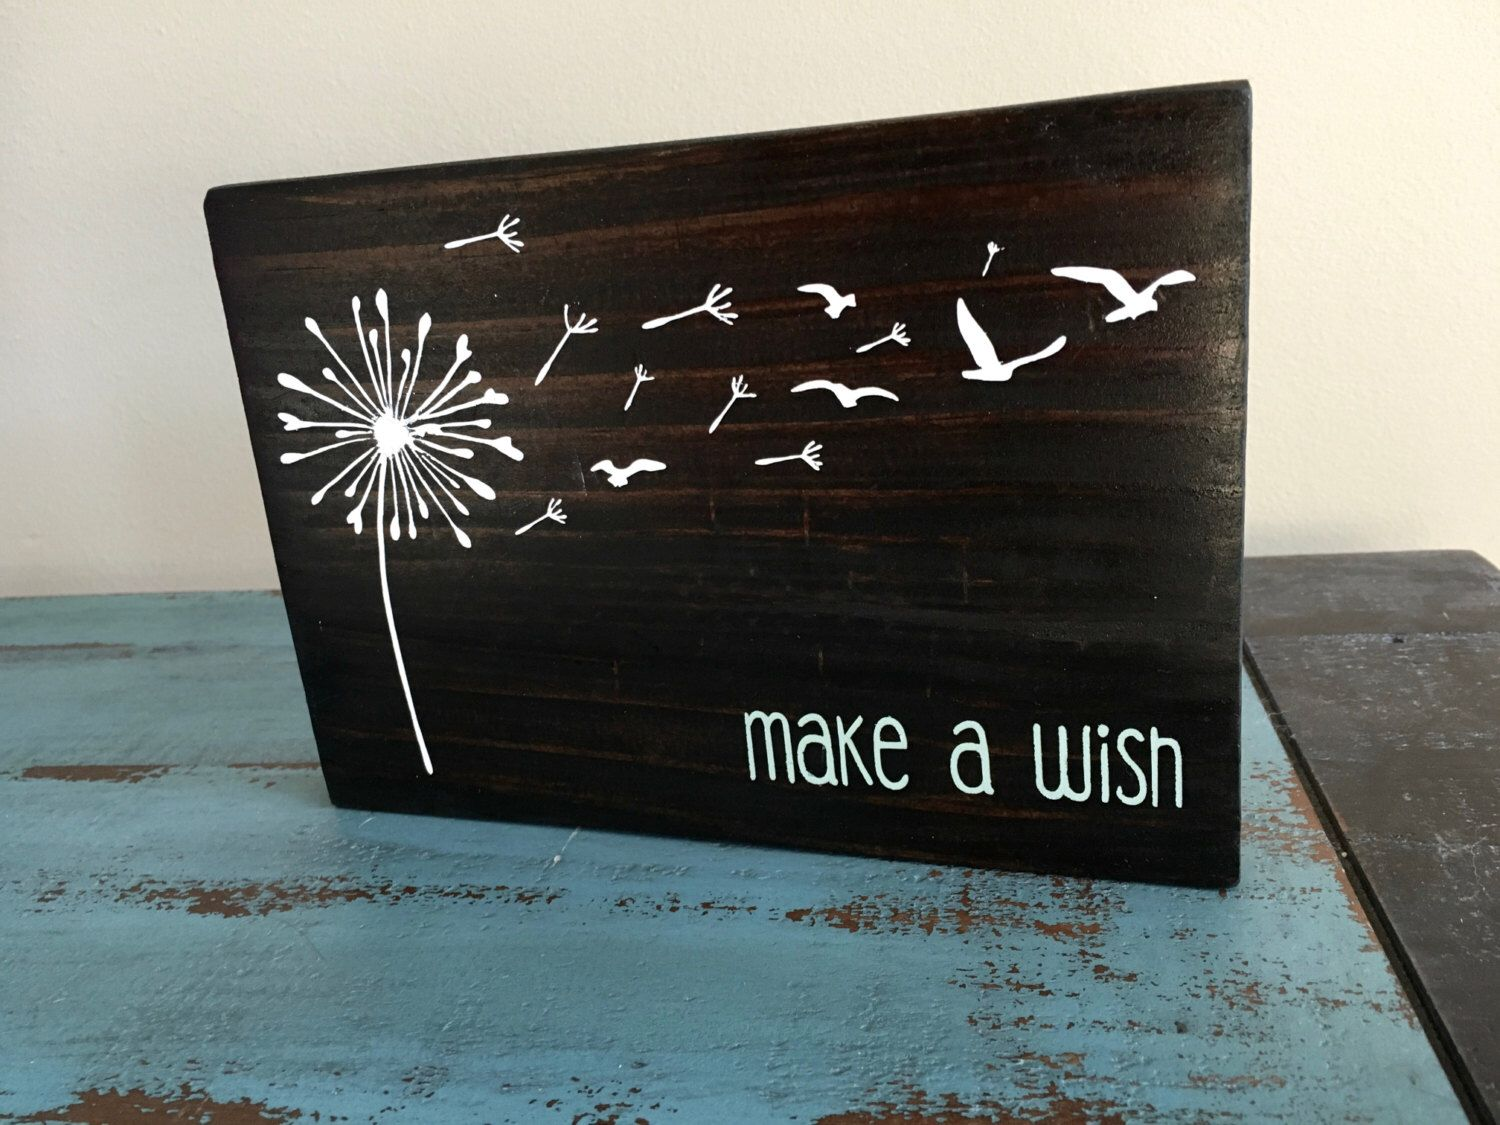 Wall Sign Decor Mesmerizing Rustic Hand Painted Make A Wish Dandelion Wood Signwall Decor Design Ideas